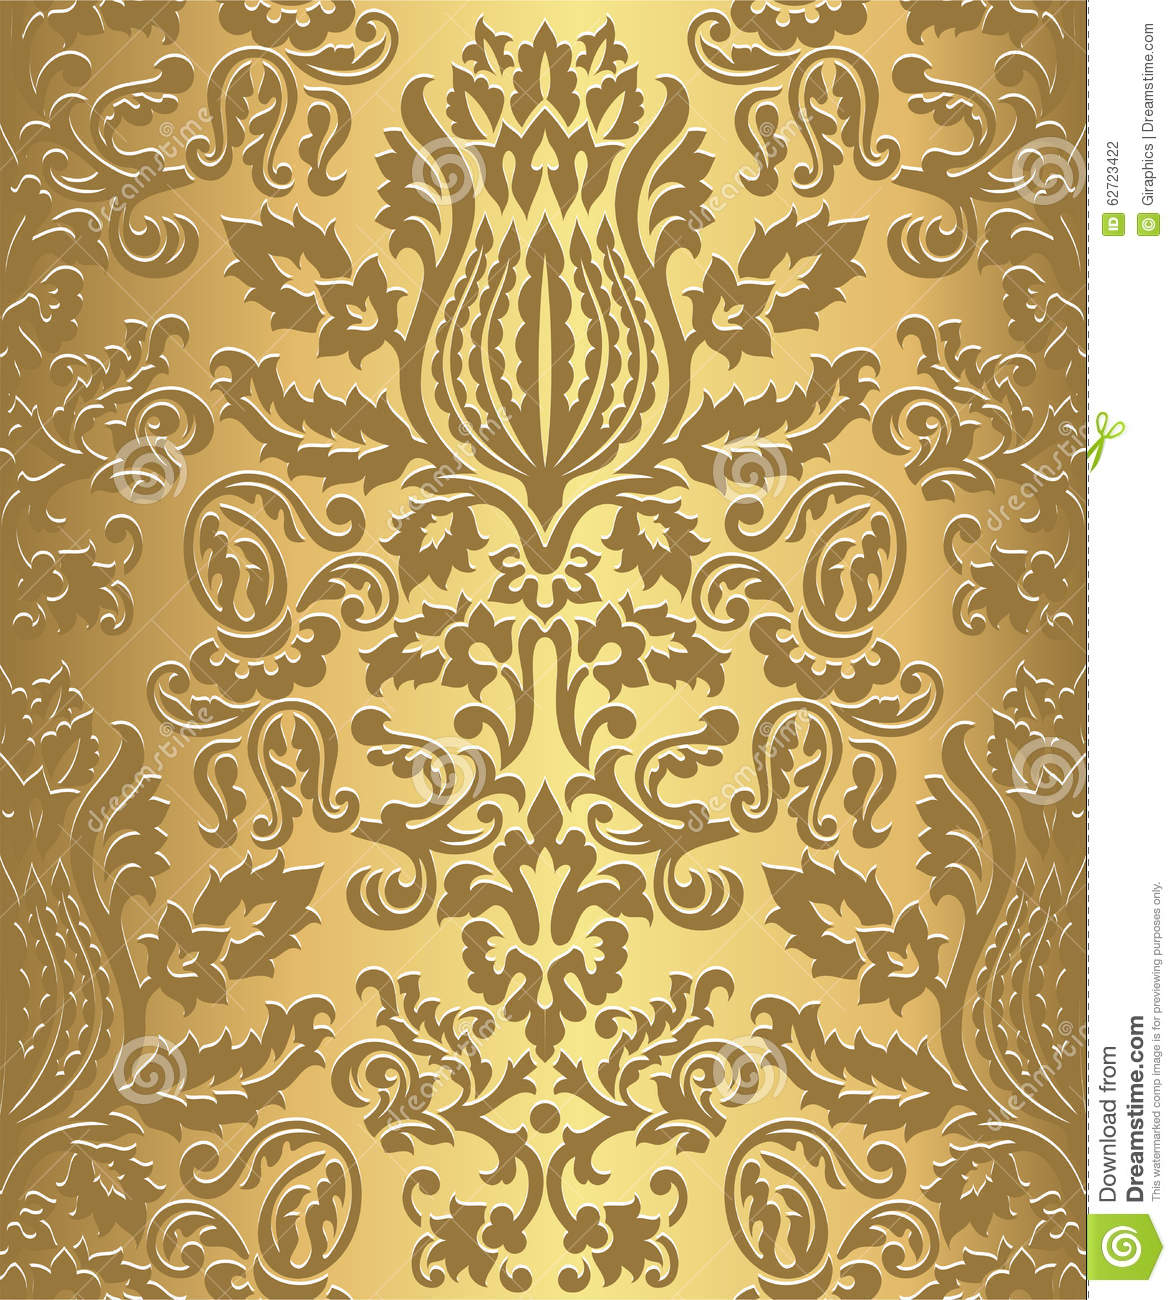 Gold Damask Wallpaper Pattern Stock Vector - Image: 62723422